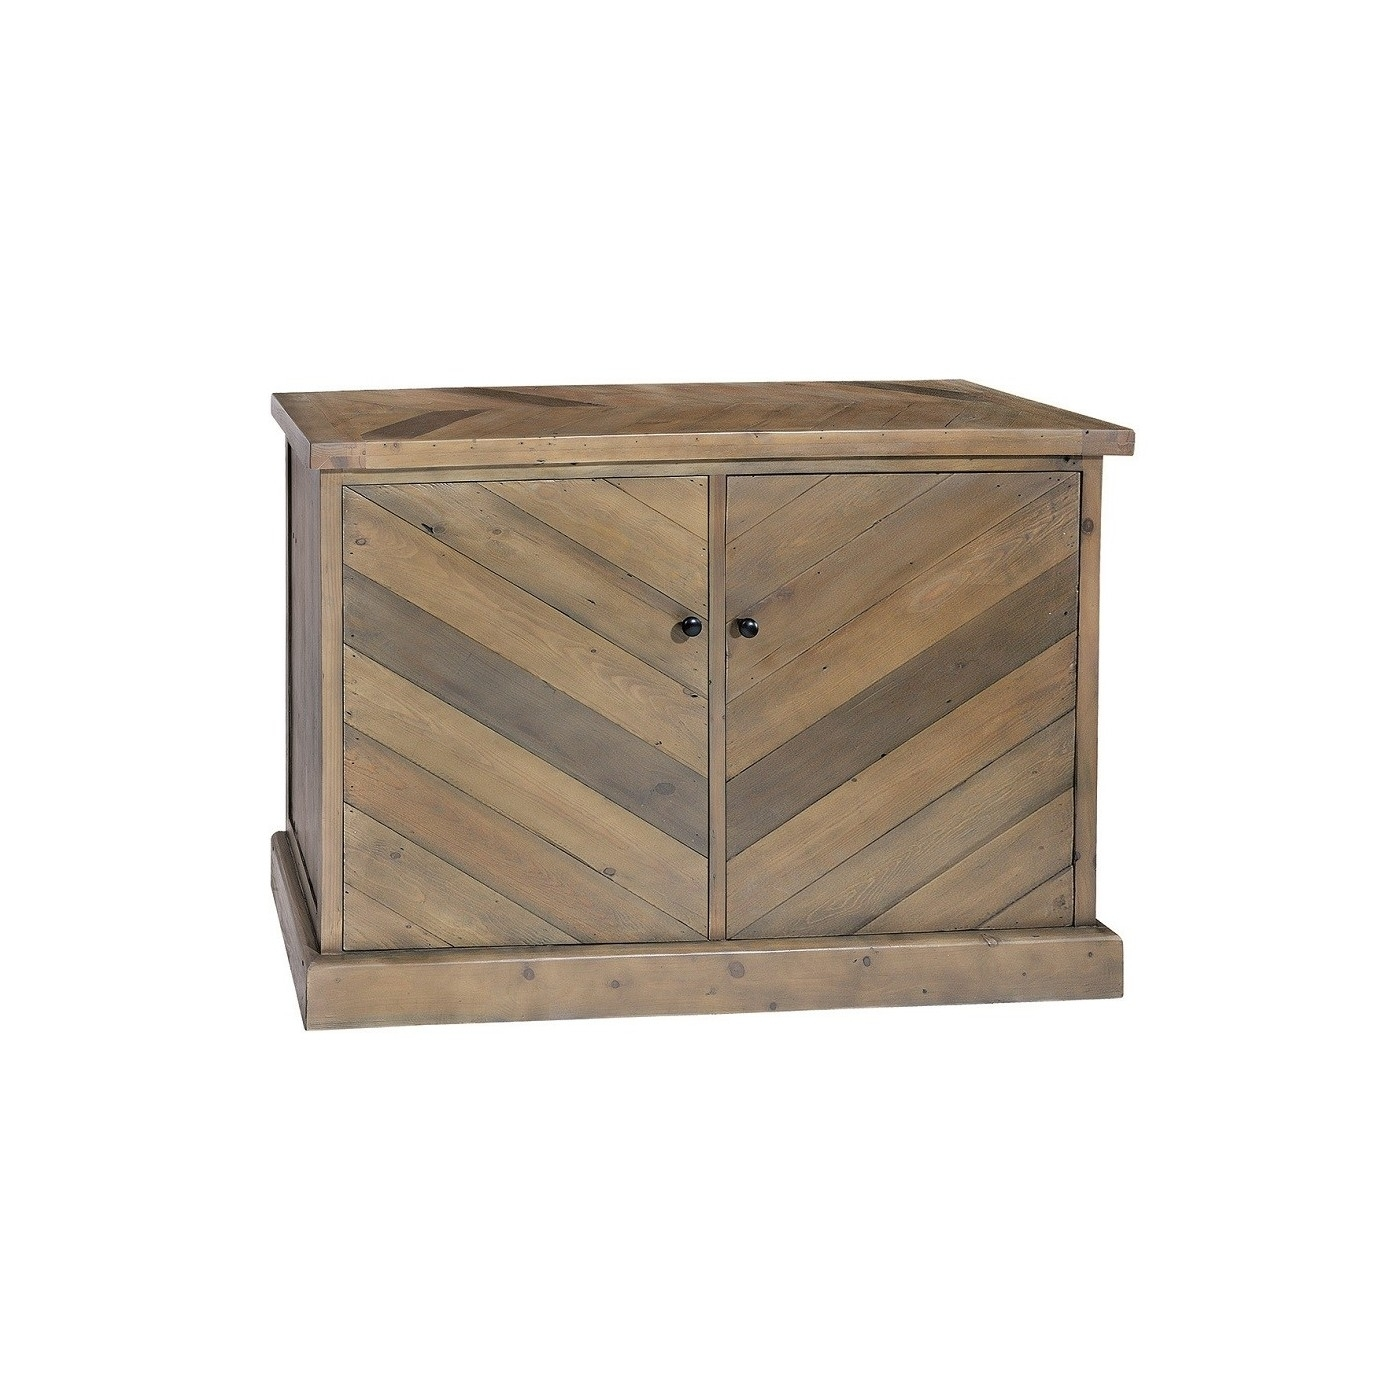 Parquet Reclaimed Pine Small Sideboard | Bedford within Parquet Sideboards (Image 18 of 30)